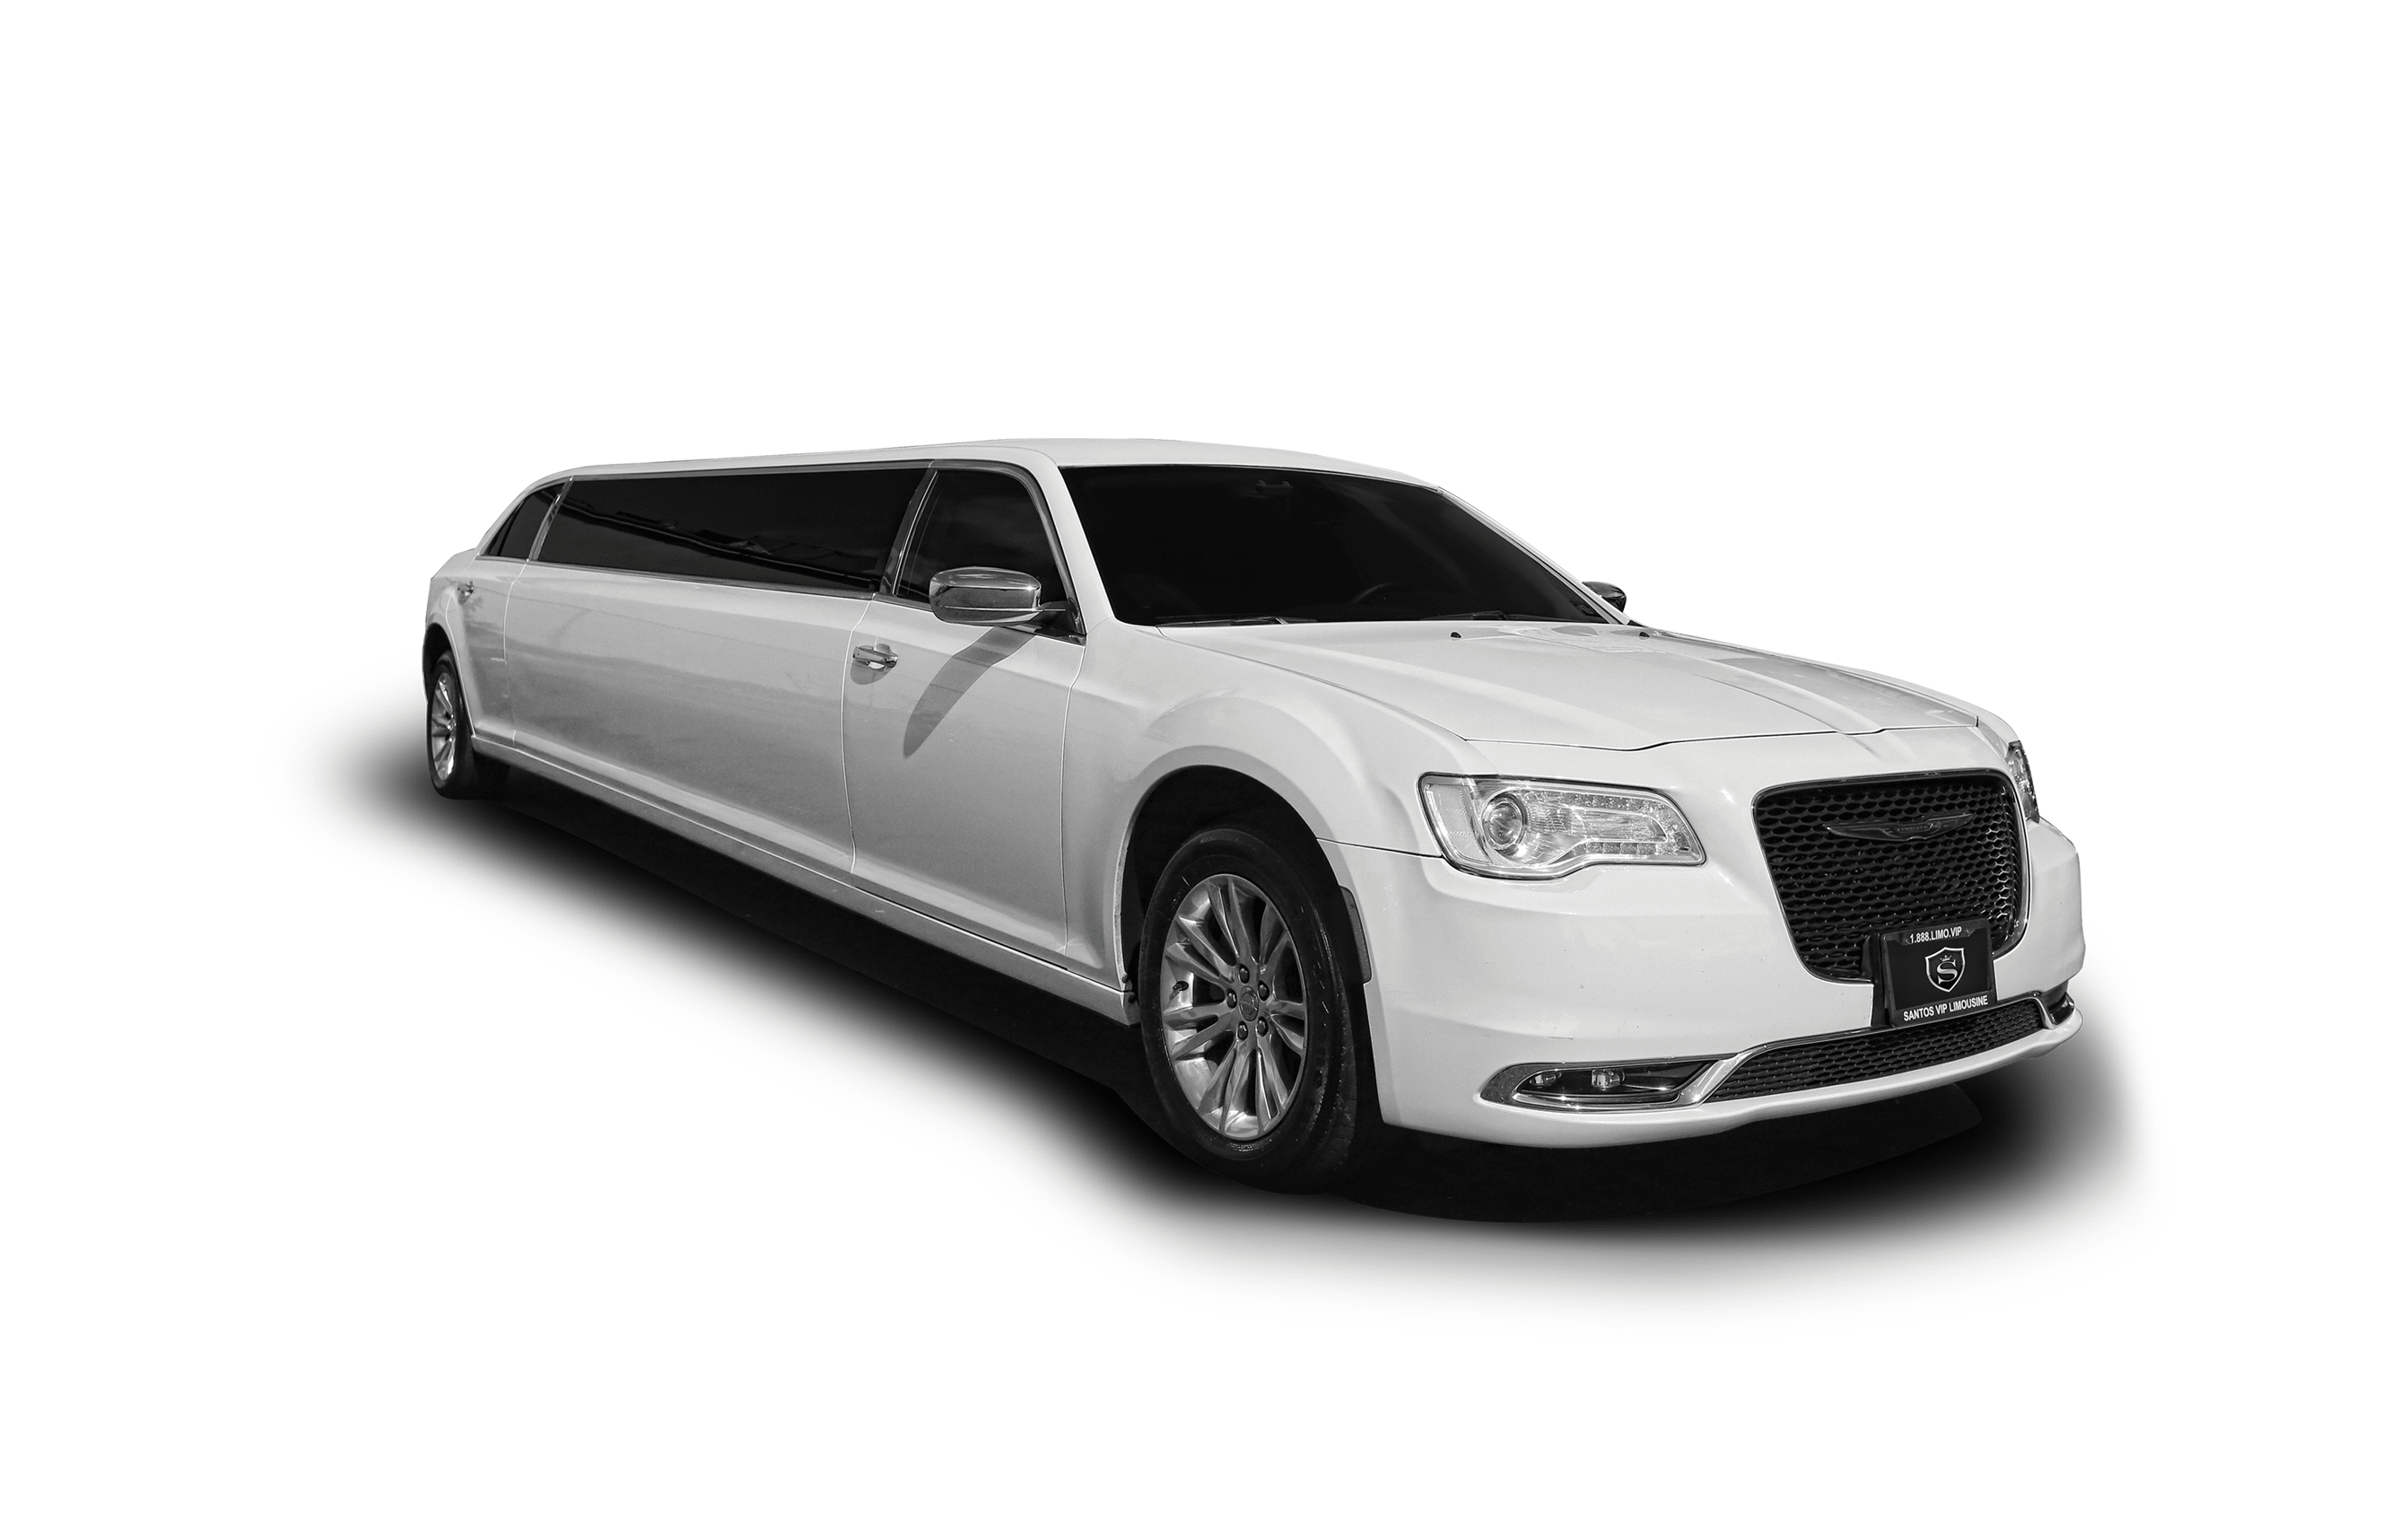 NJ Winery Tour - Chrysler 300 stretch limousine